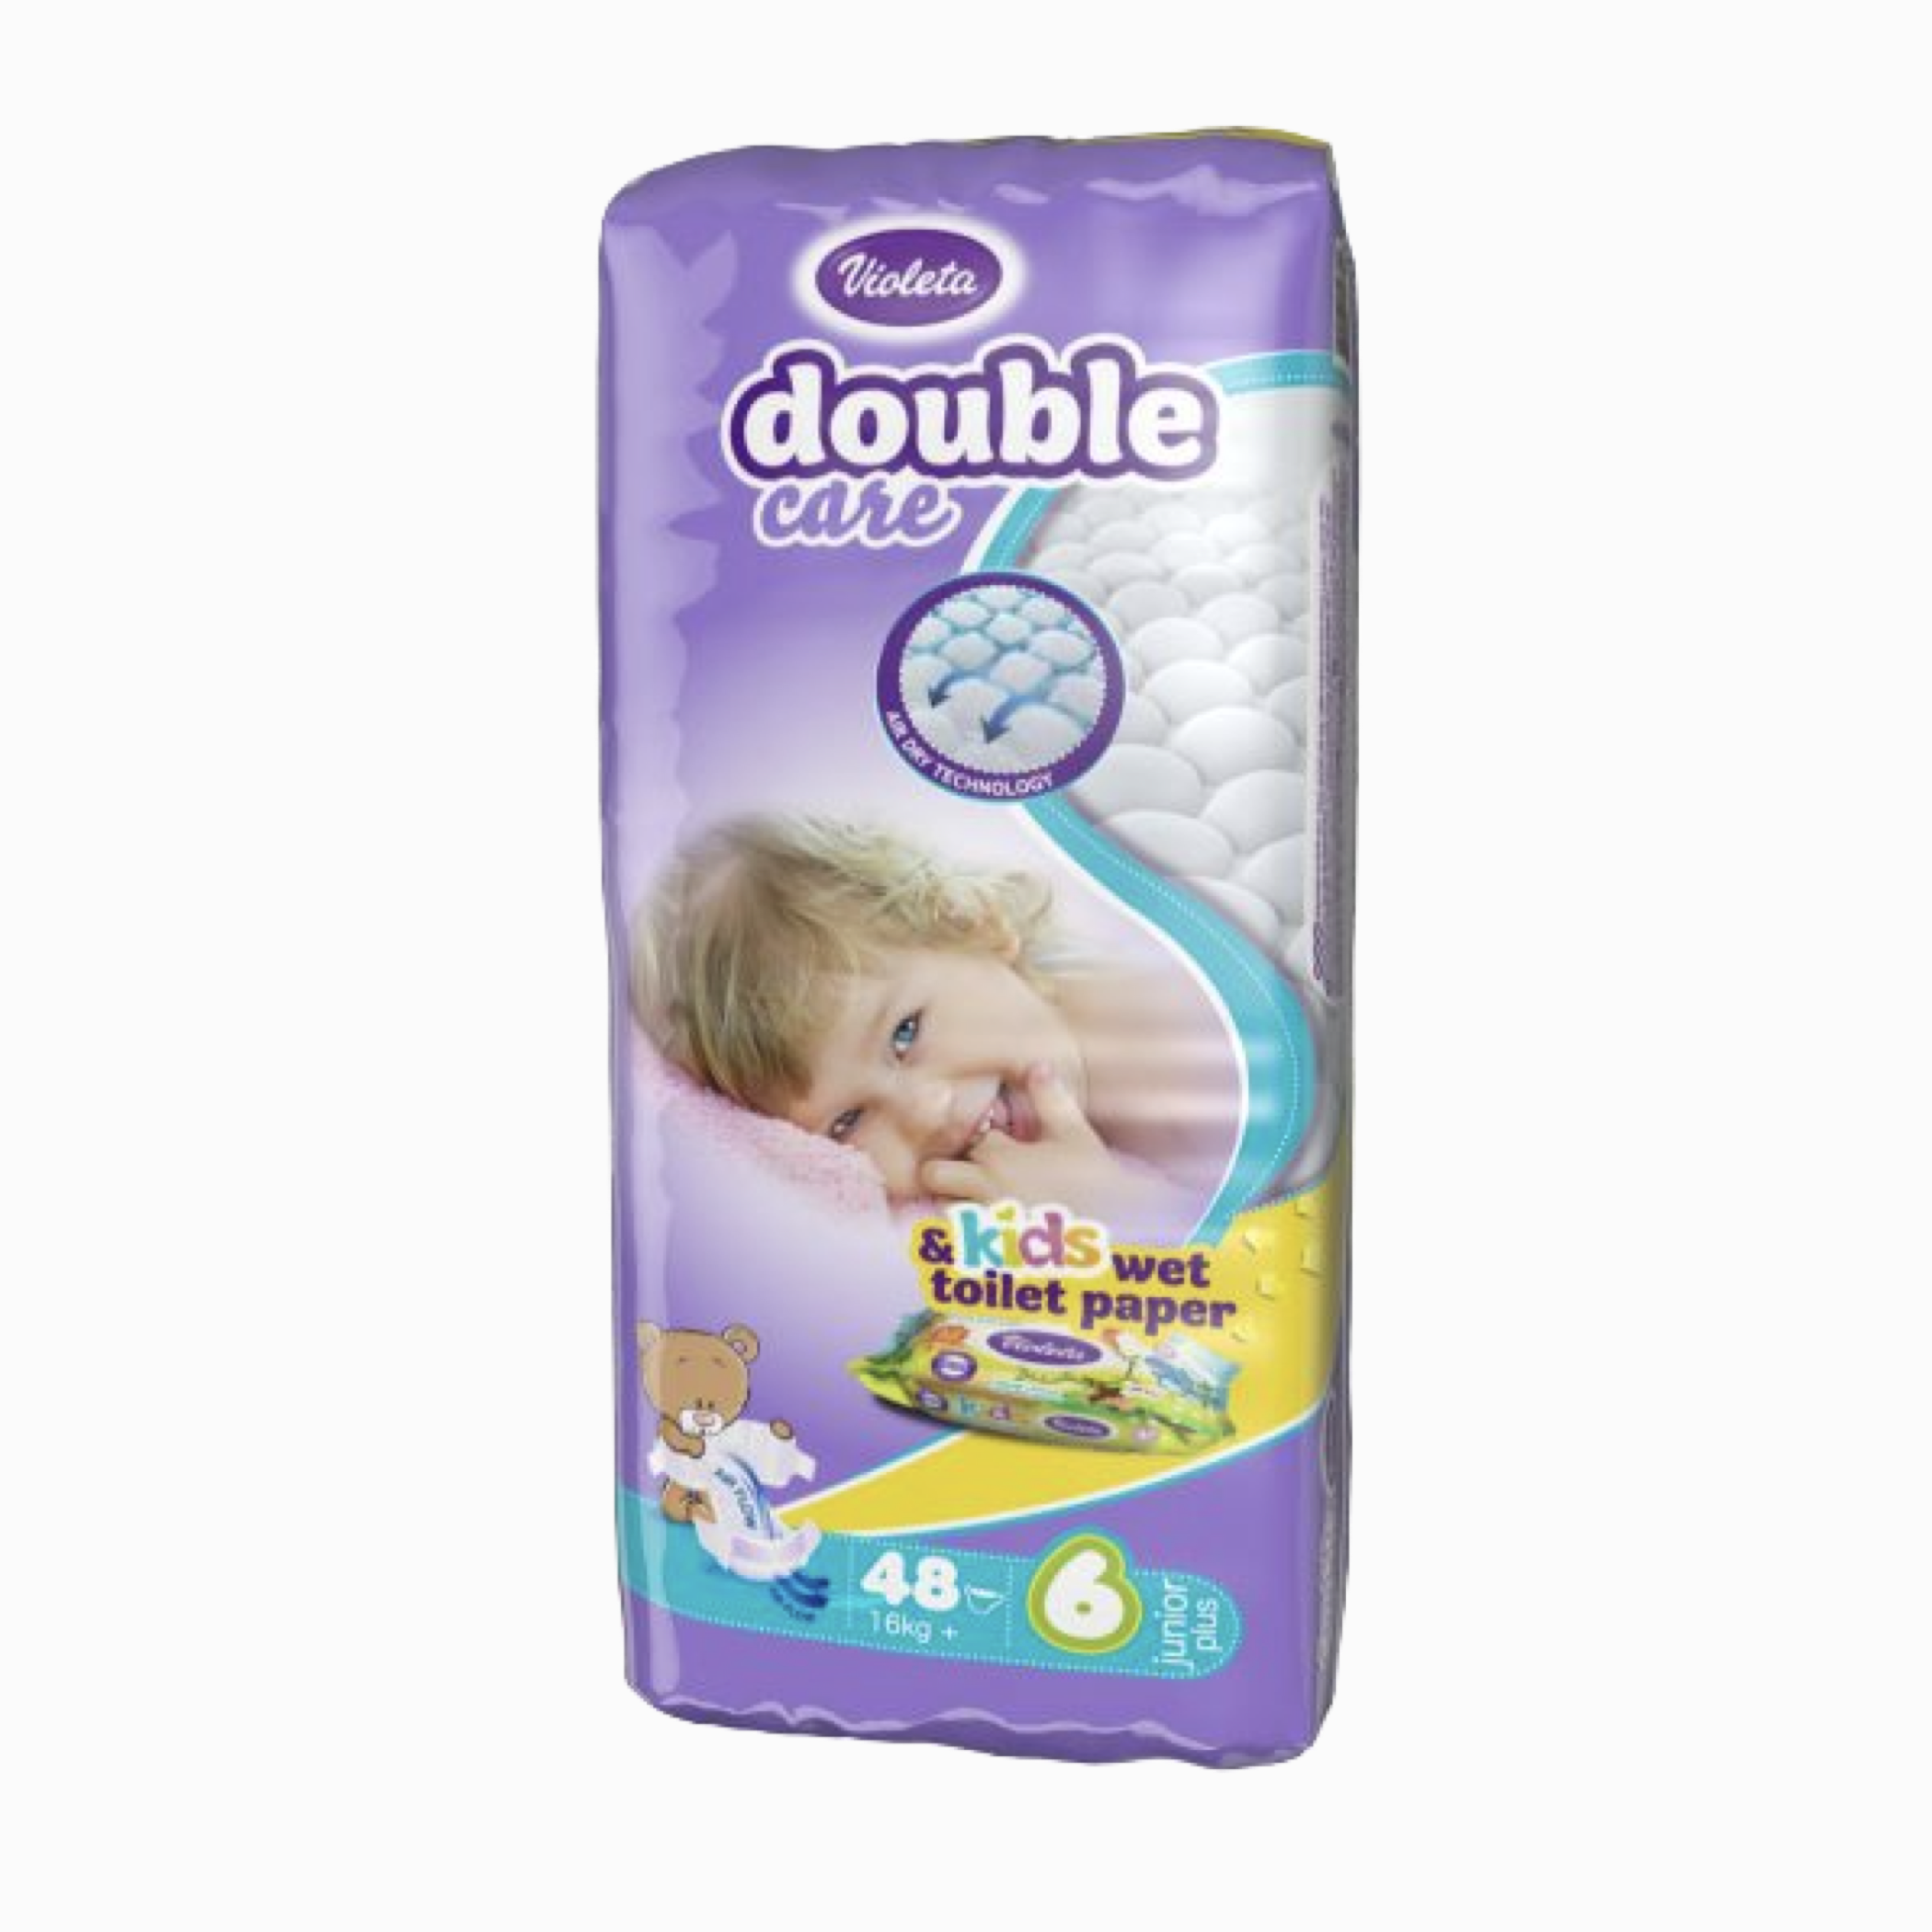 VIOLETA PELENA DOUBLE CARE AIR DRY 48(JUN.PL. 11-25 NR 6